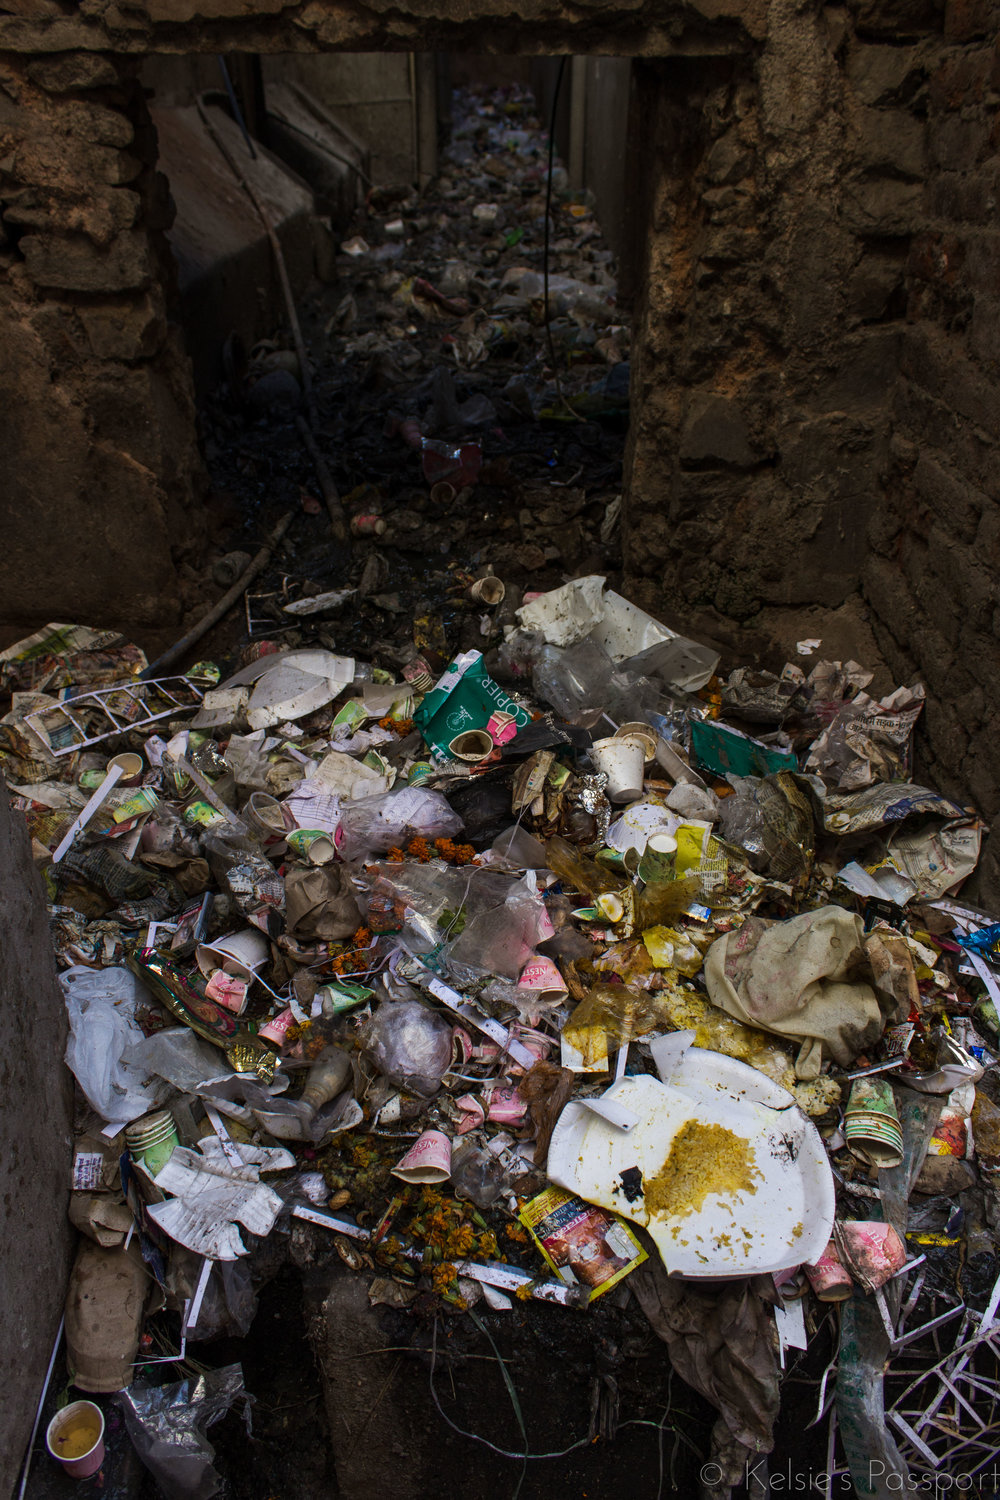 An alleyway in Jaipur overflowing with trash.